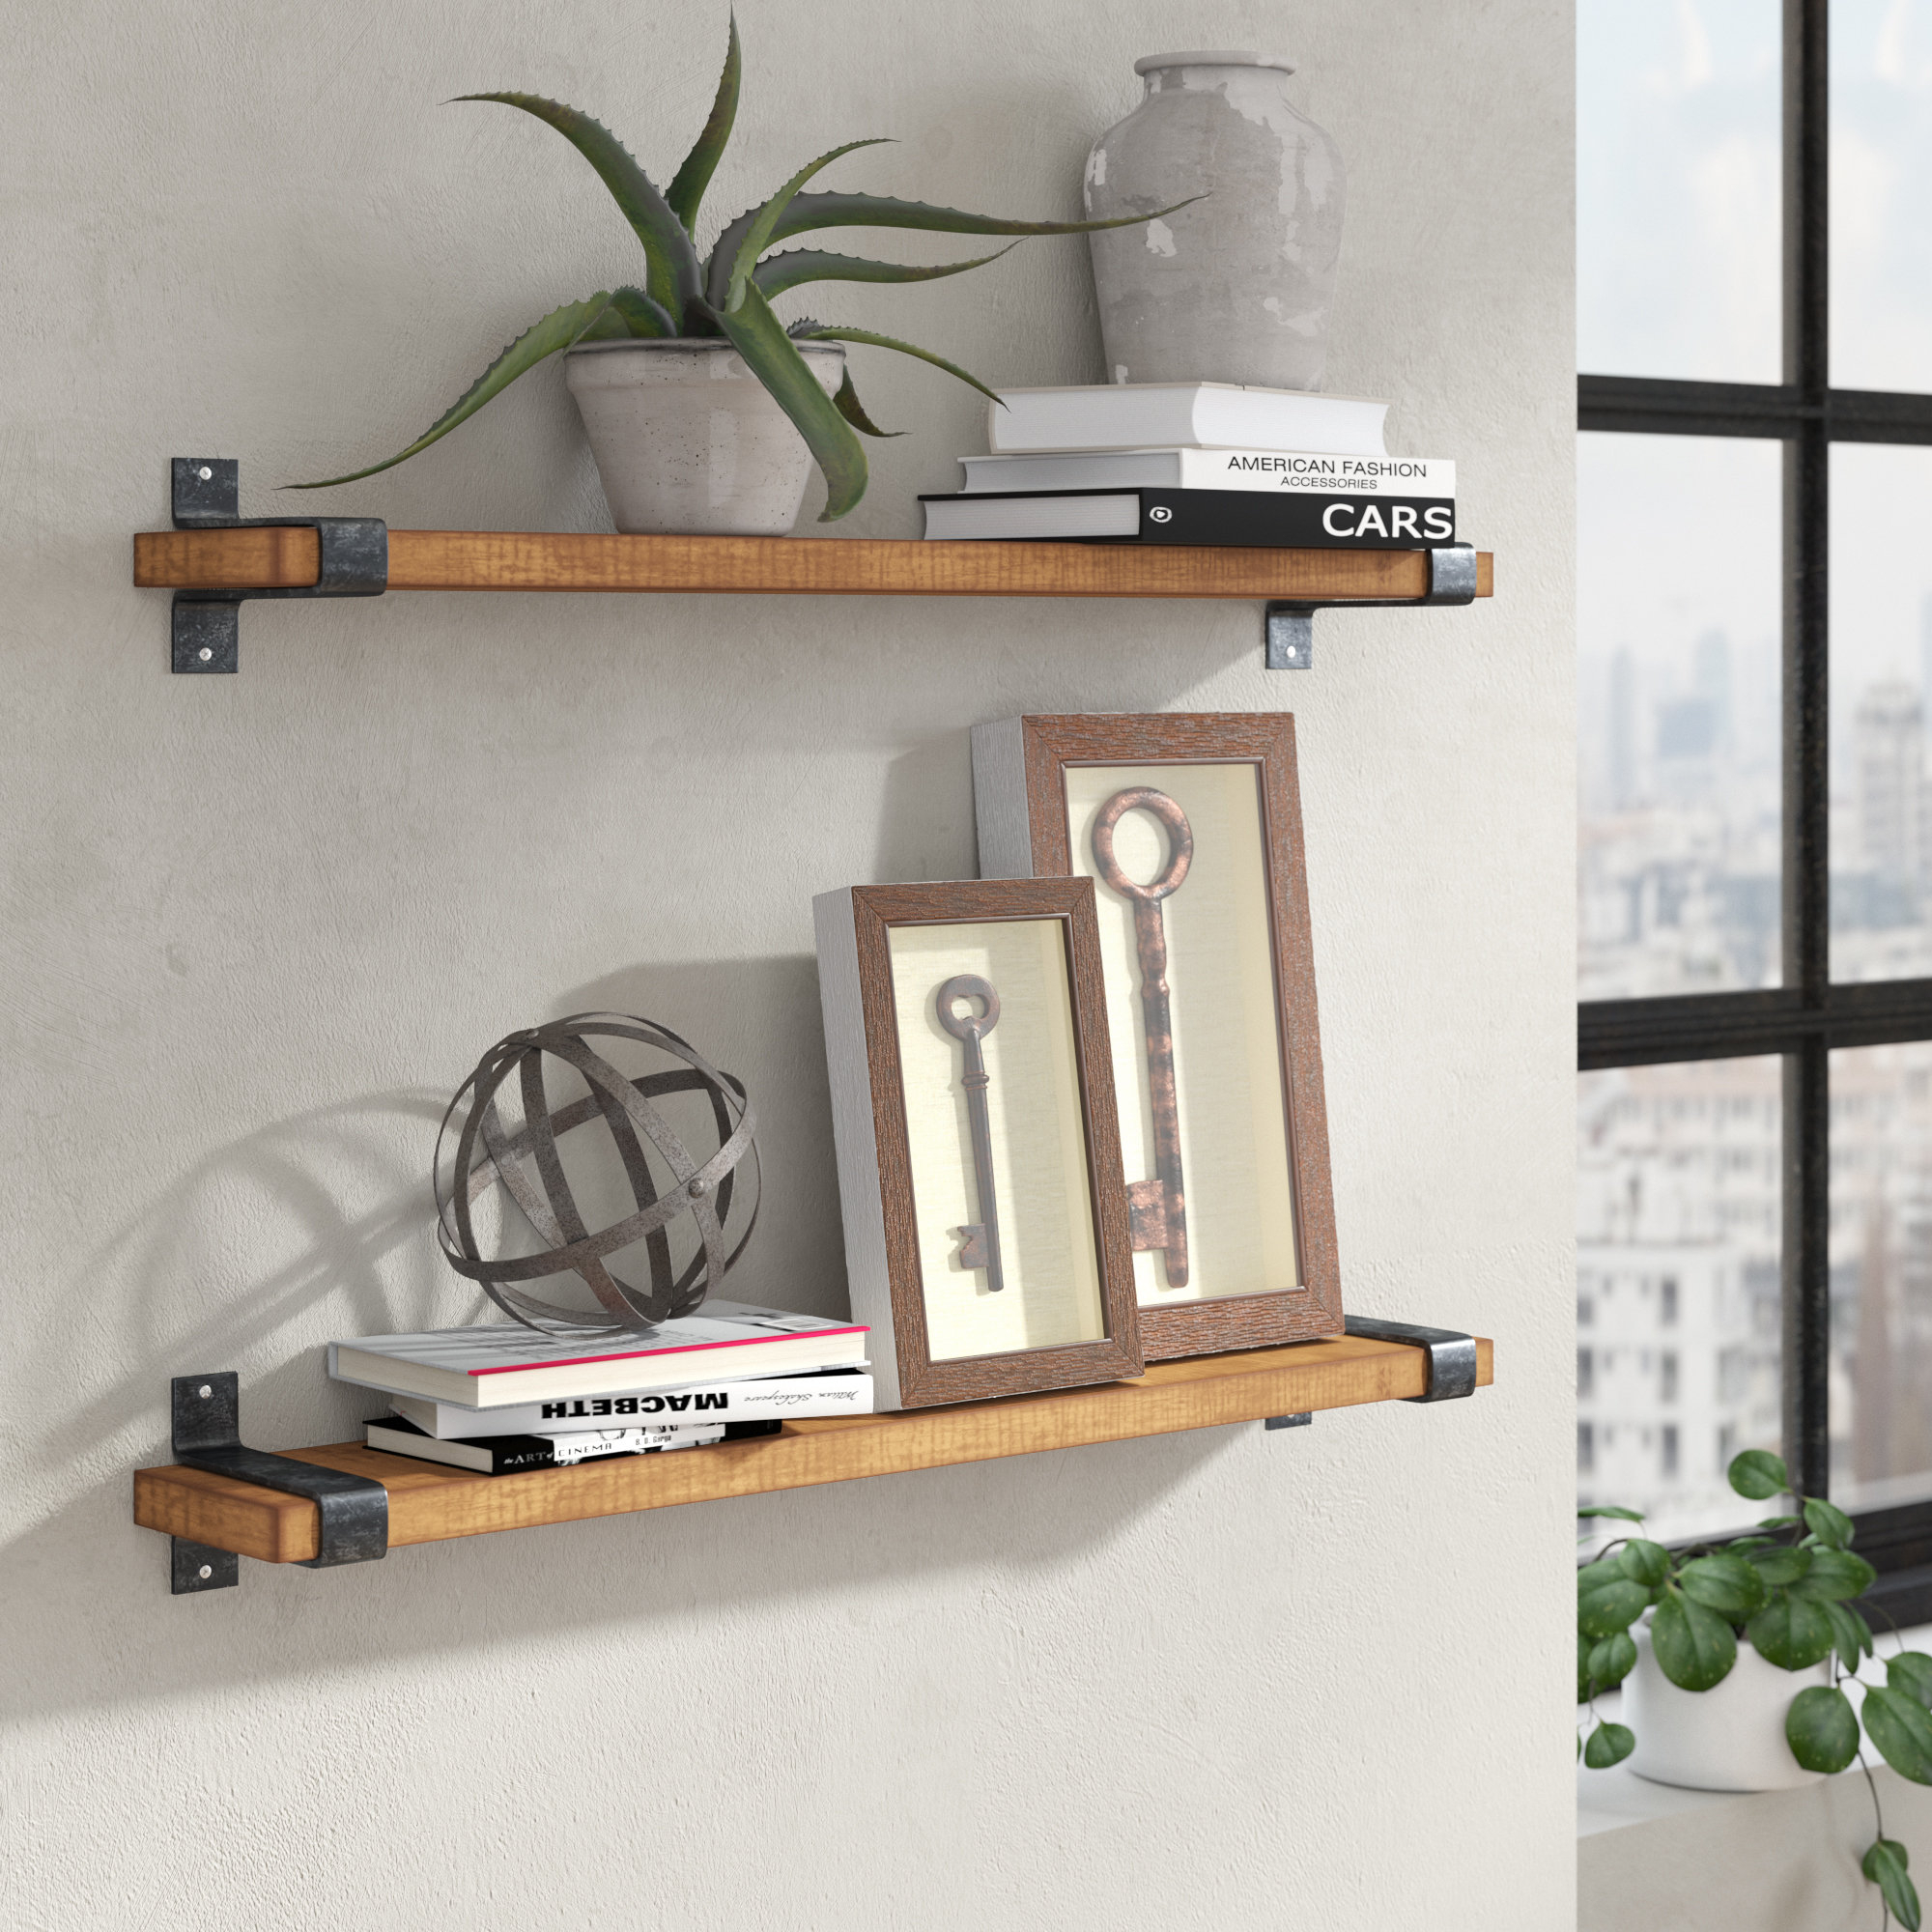 Treyvon Industrial Grace Wall Shelf for Farm Metal Wall Rack and 3 Tin Pot With Hanger Wall Decor (Image 22 of 30)